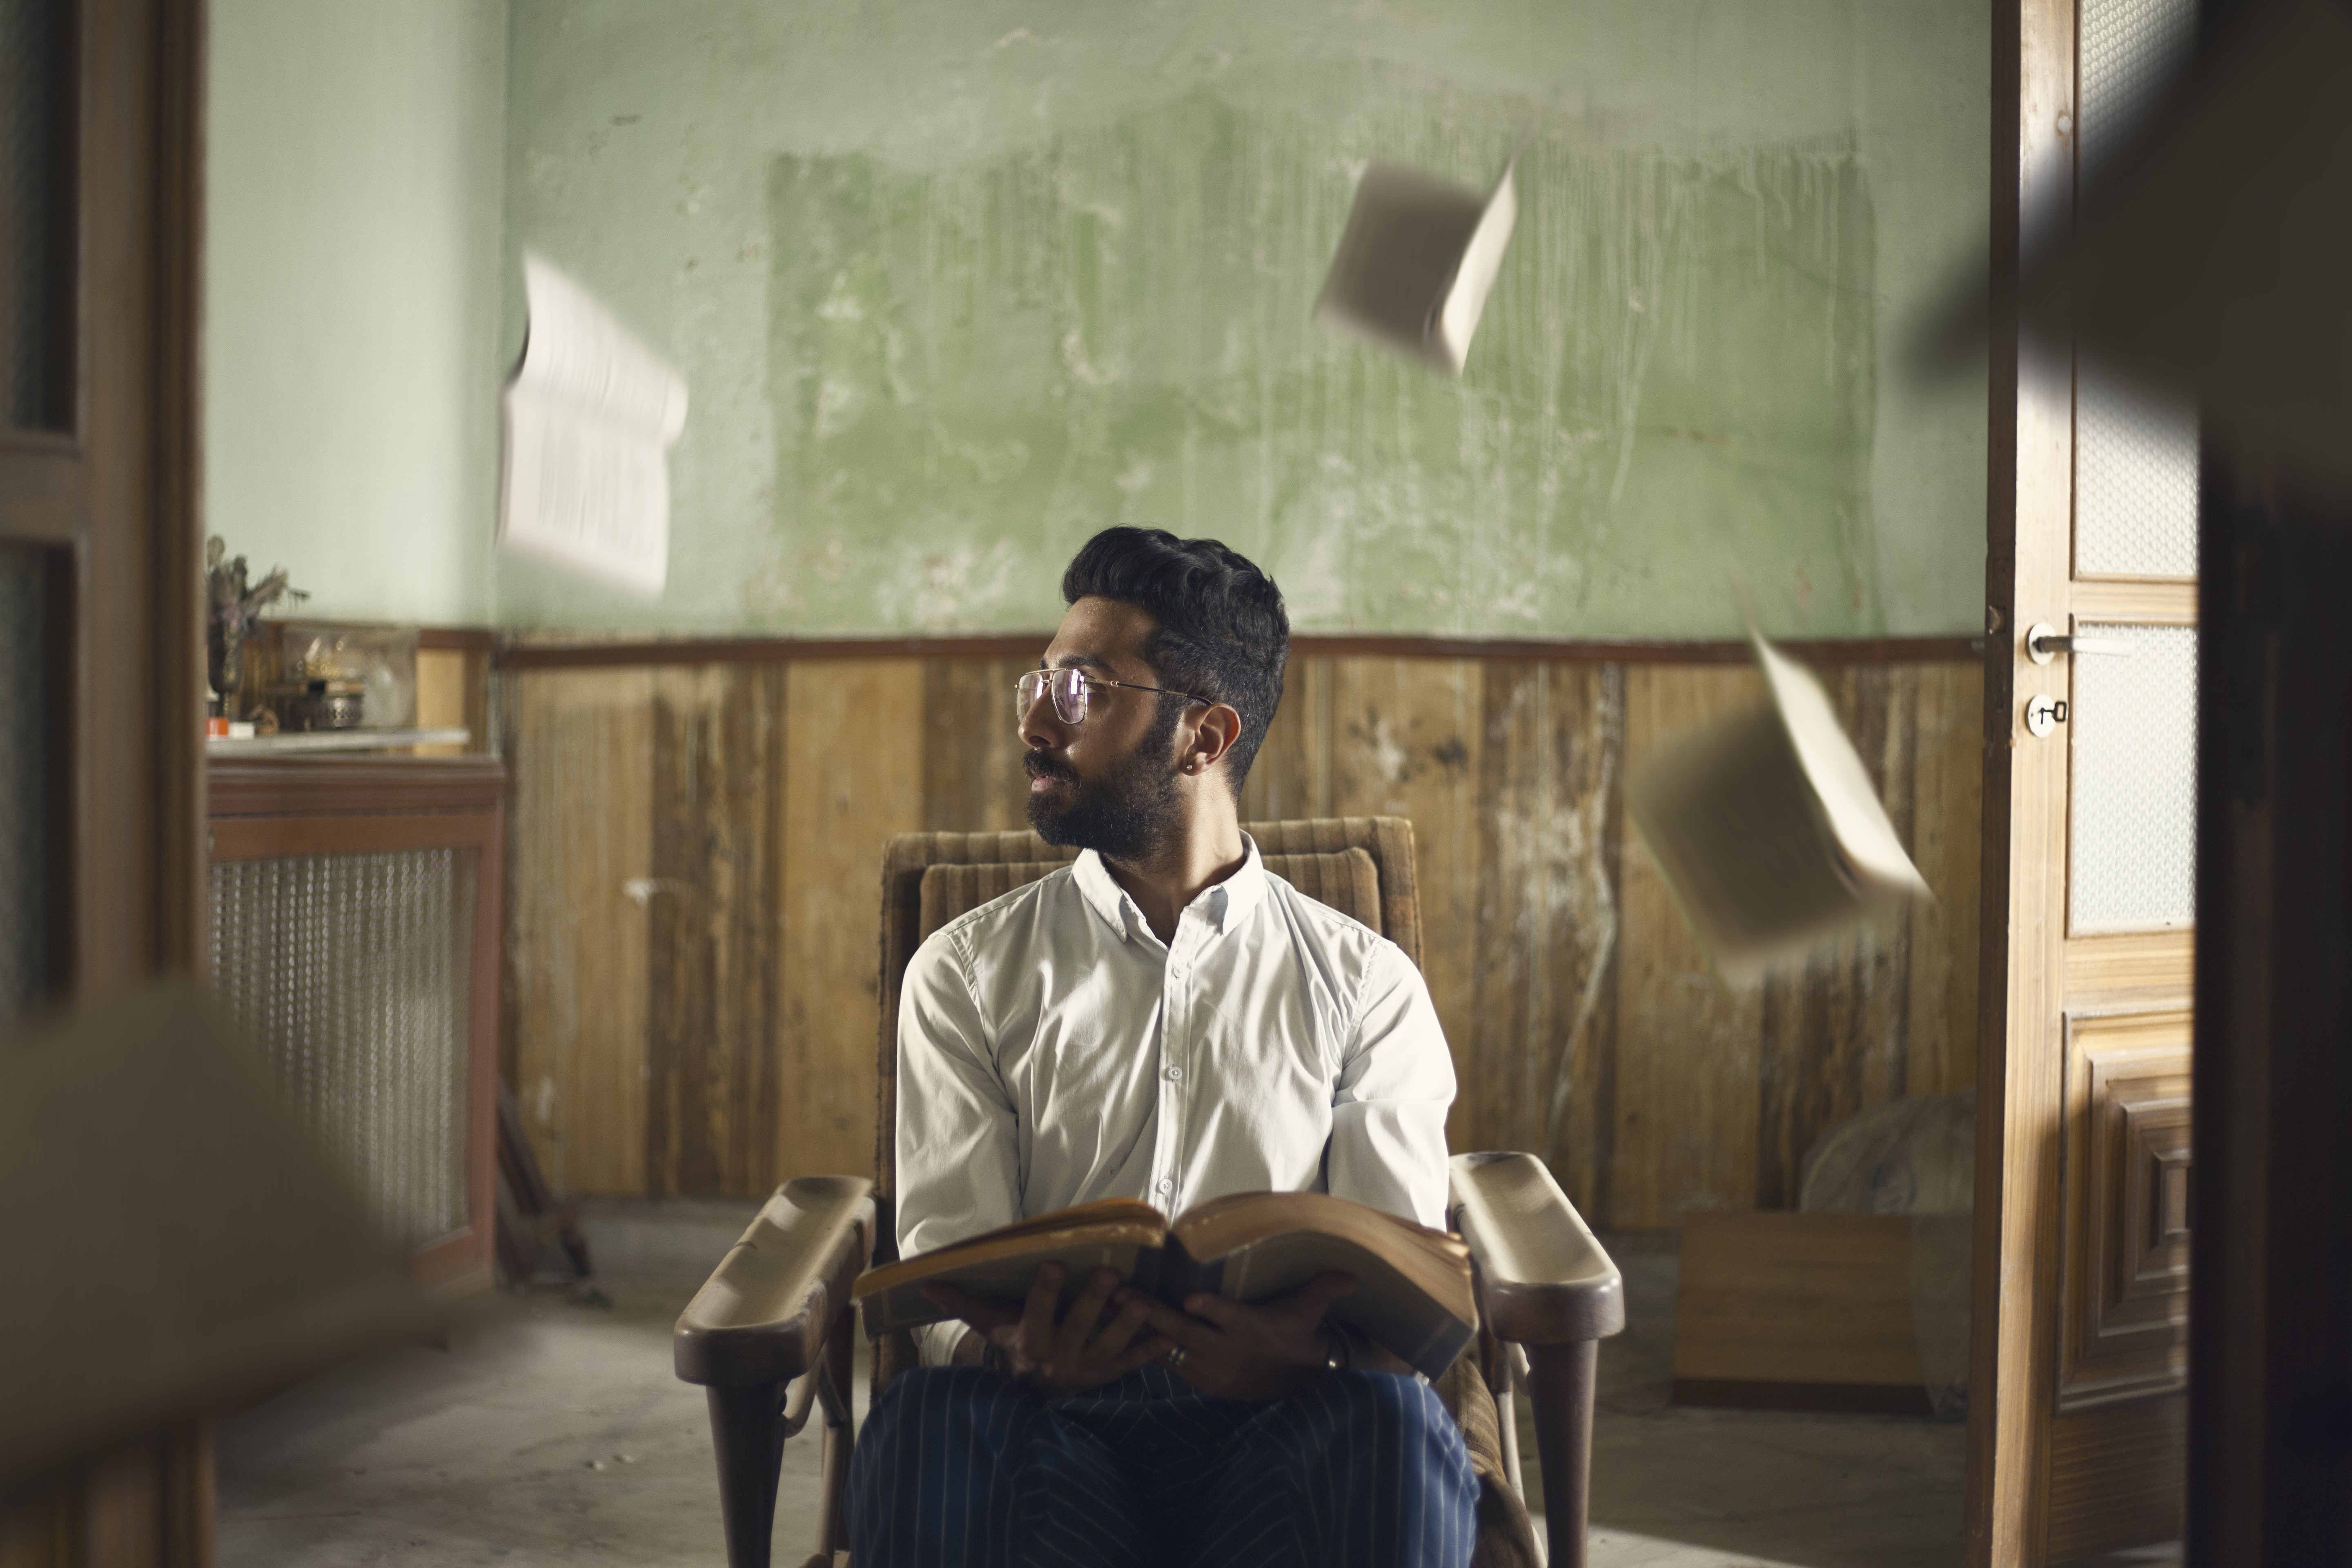 man sitting on brown wooden armchair while carrying brown book